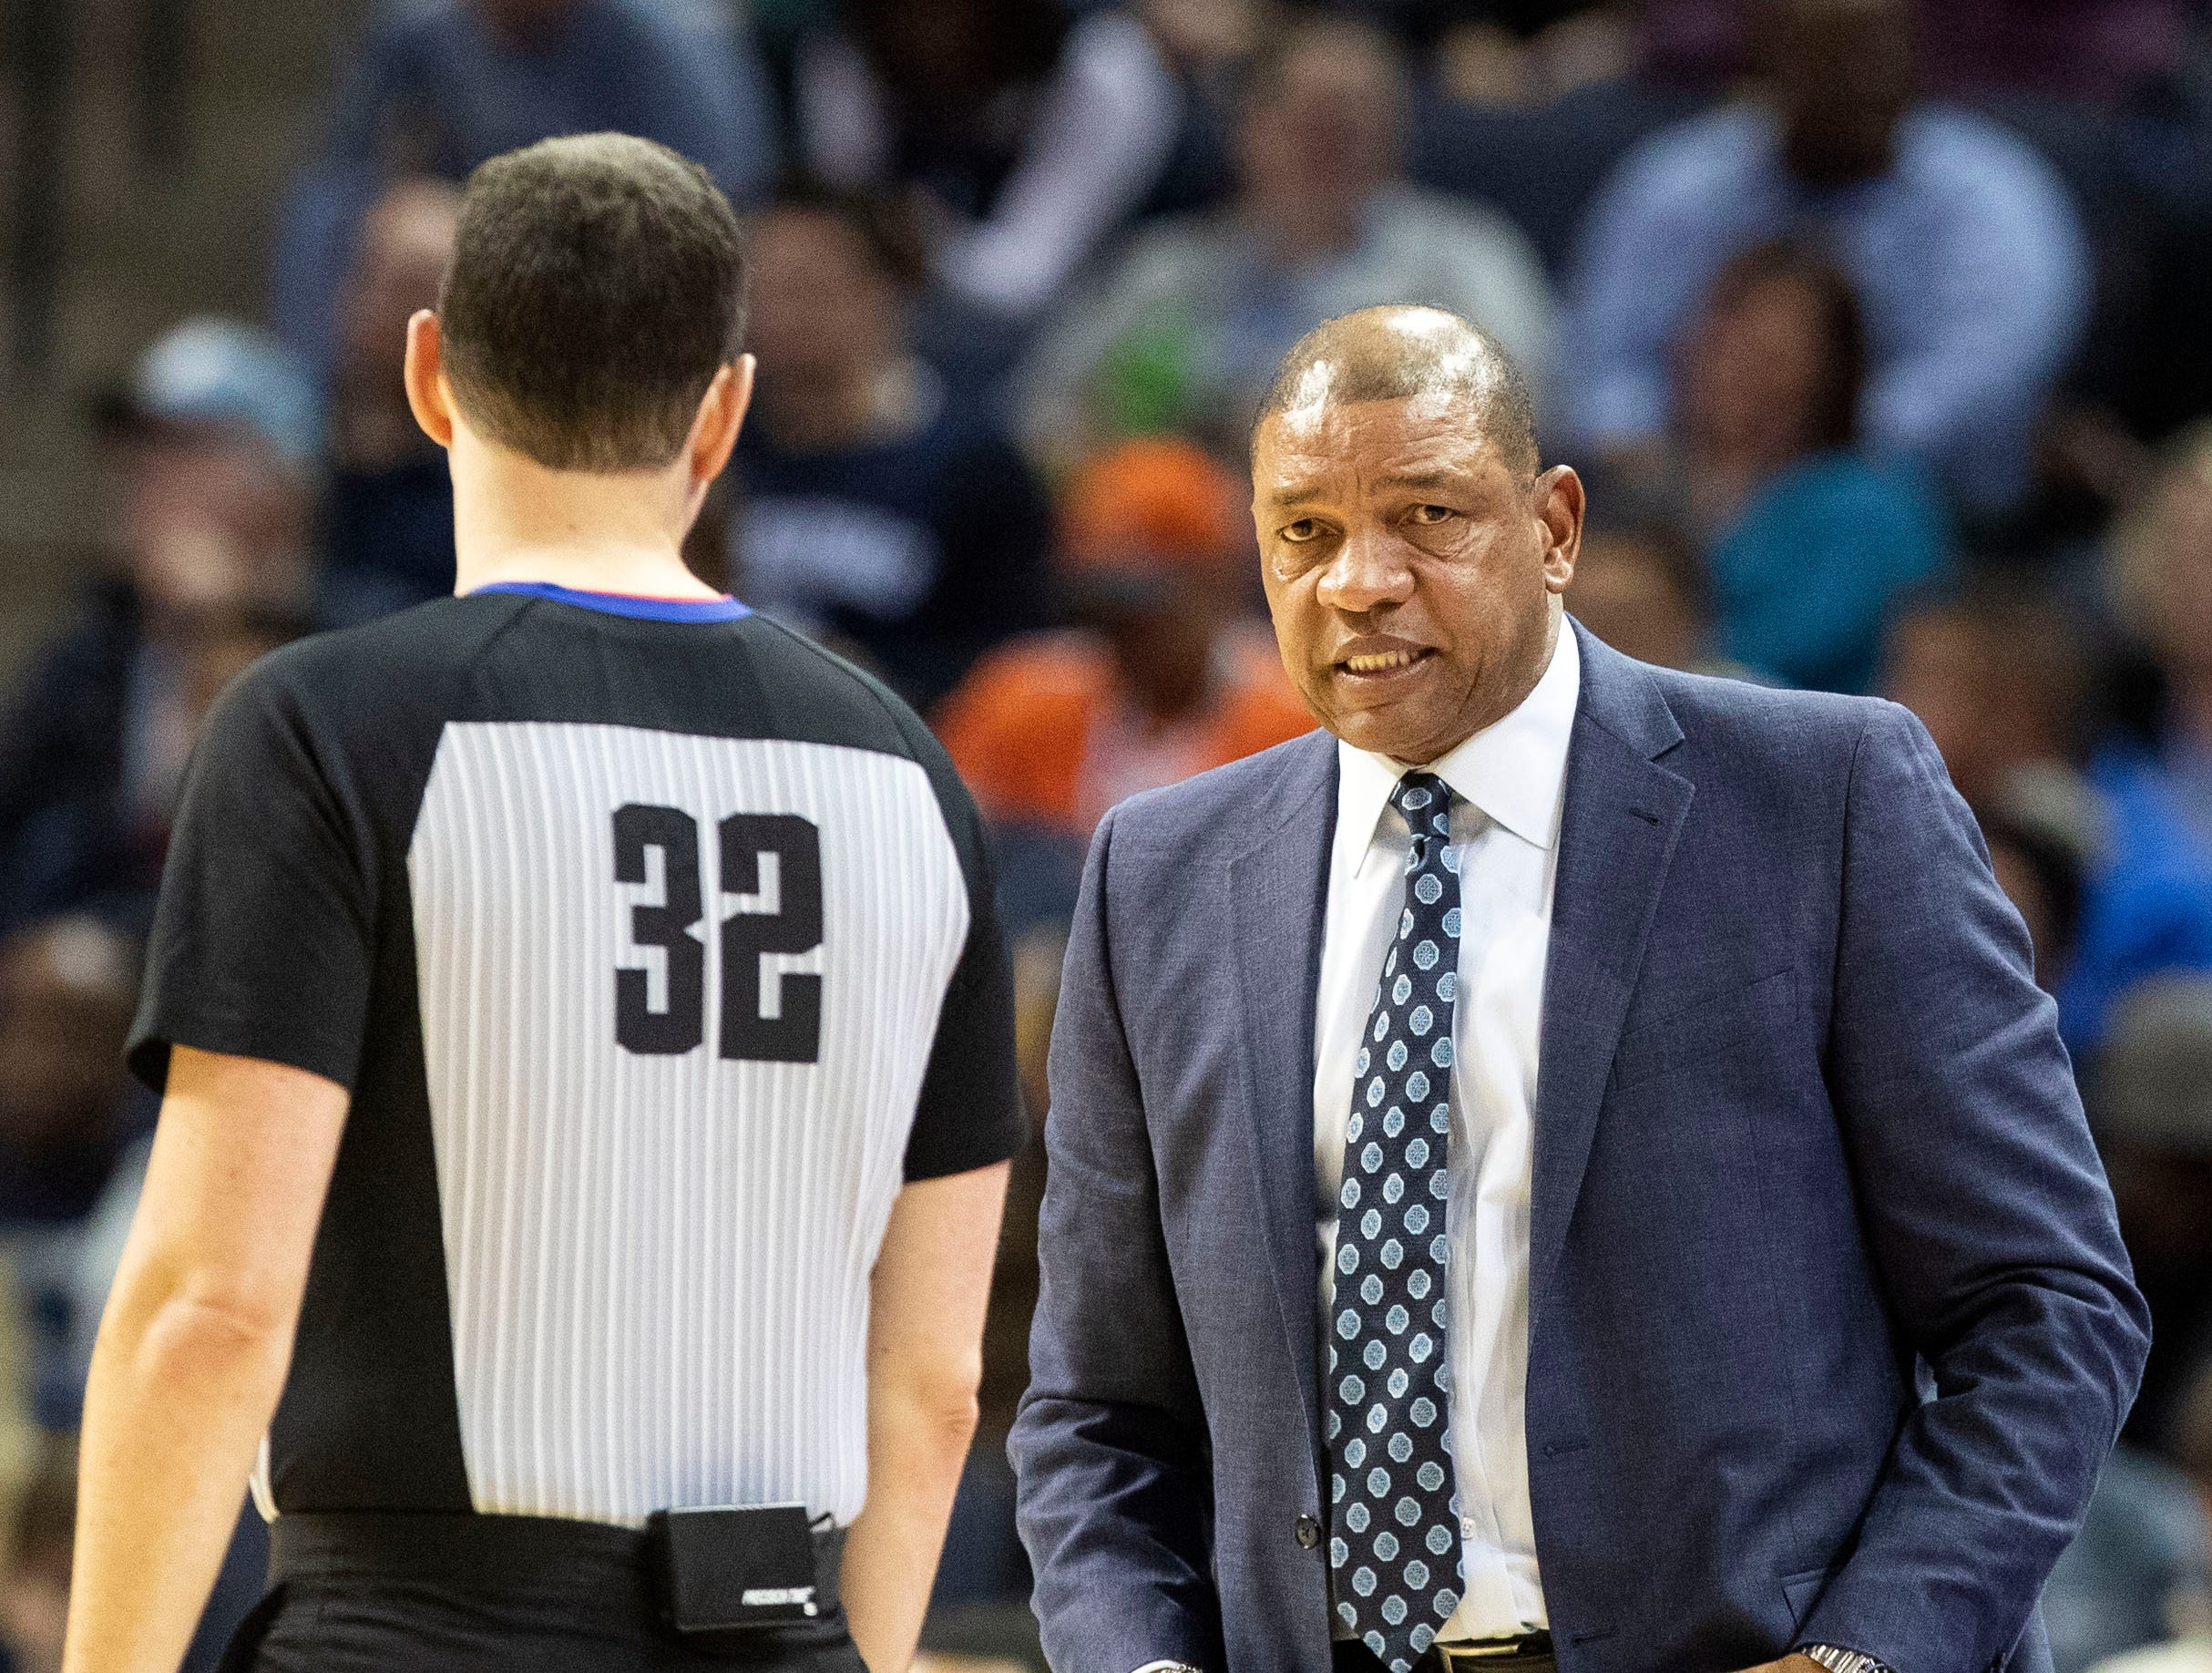 Los Angeles Clippers head coach Doc Rivers, questions a call during  a NBA basketball game between the Memphis Grizzlies and the  Los Angeles Clippers in the Fedex Forum, Wednesday, Dec. 5, 2018.